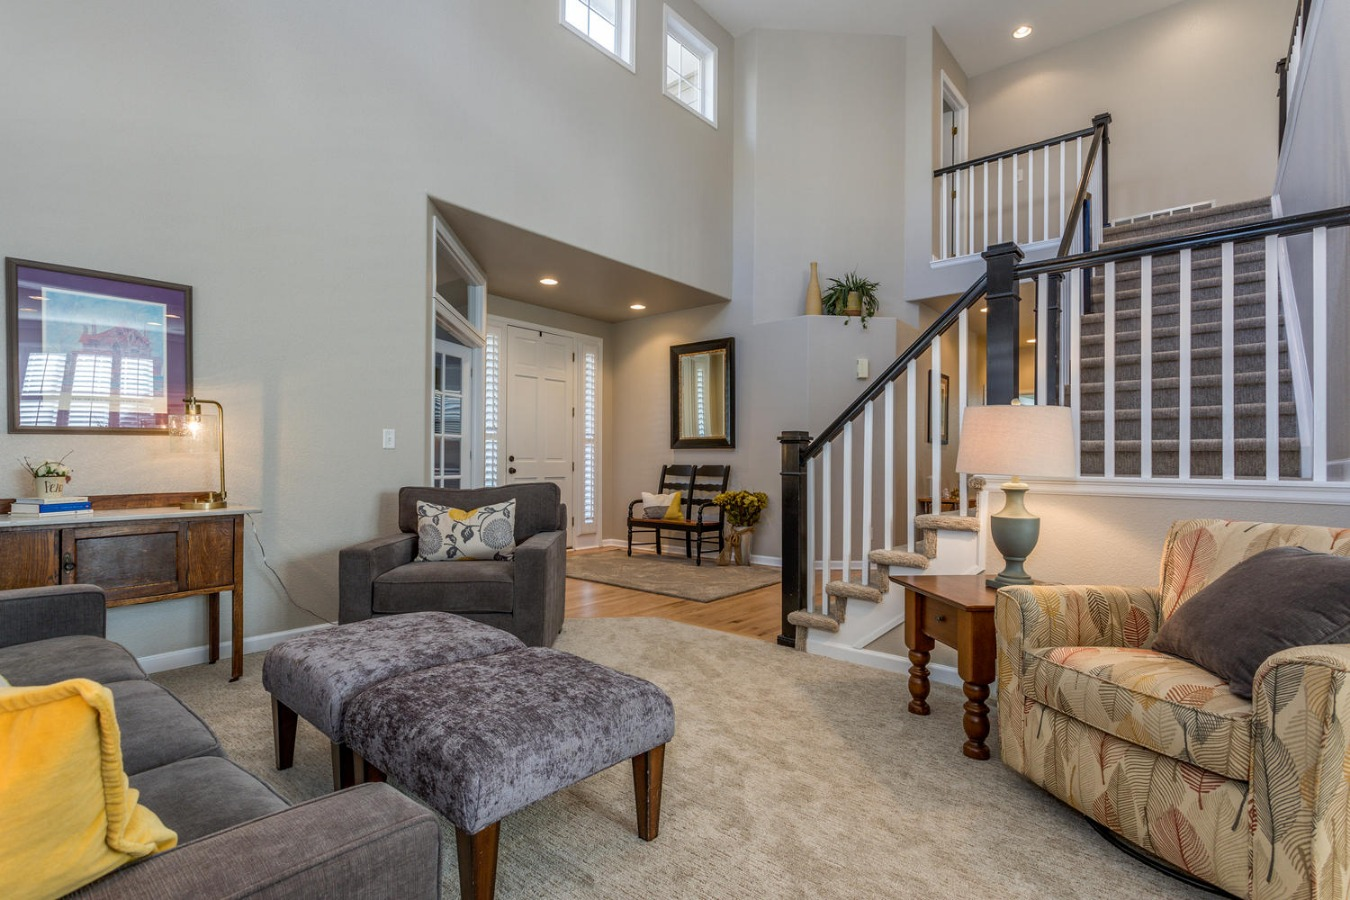 Two Story Open Vaults in Living Room